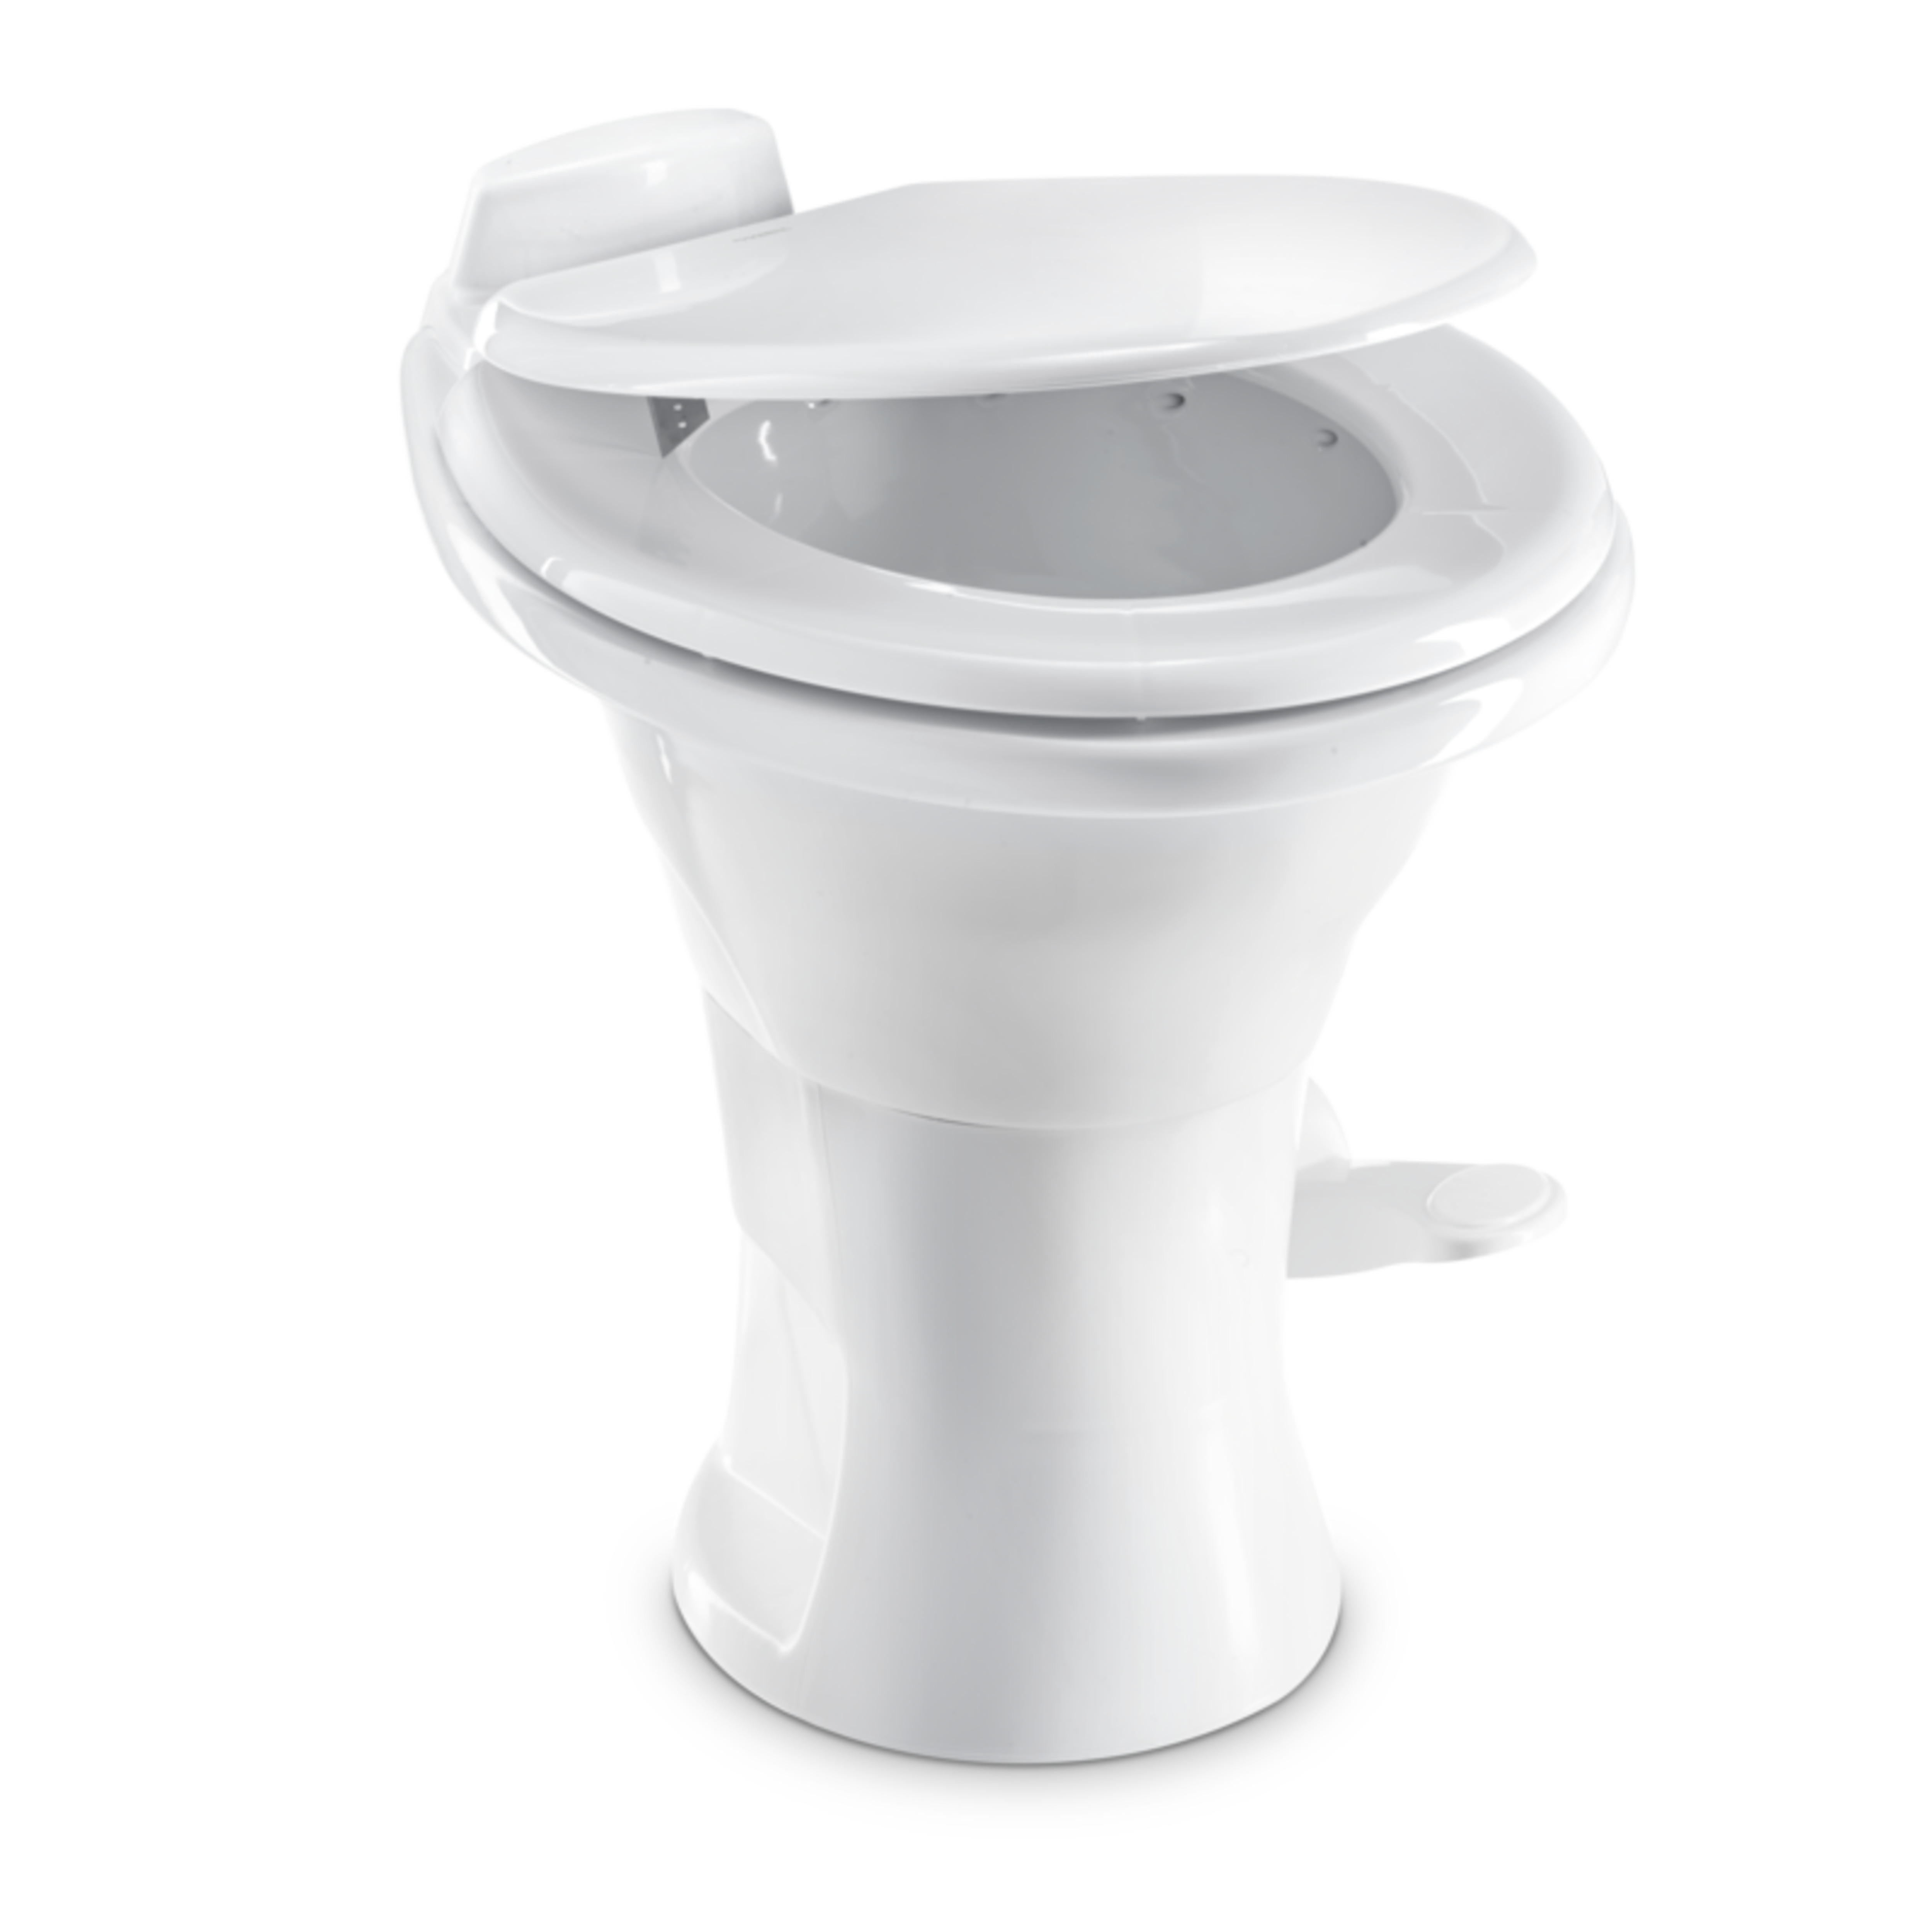 Dometic Sanitation 302310183 Dometic 310 Toilet Bone Std